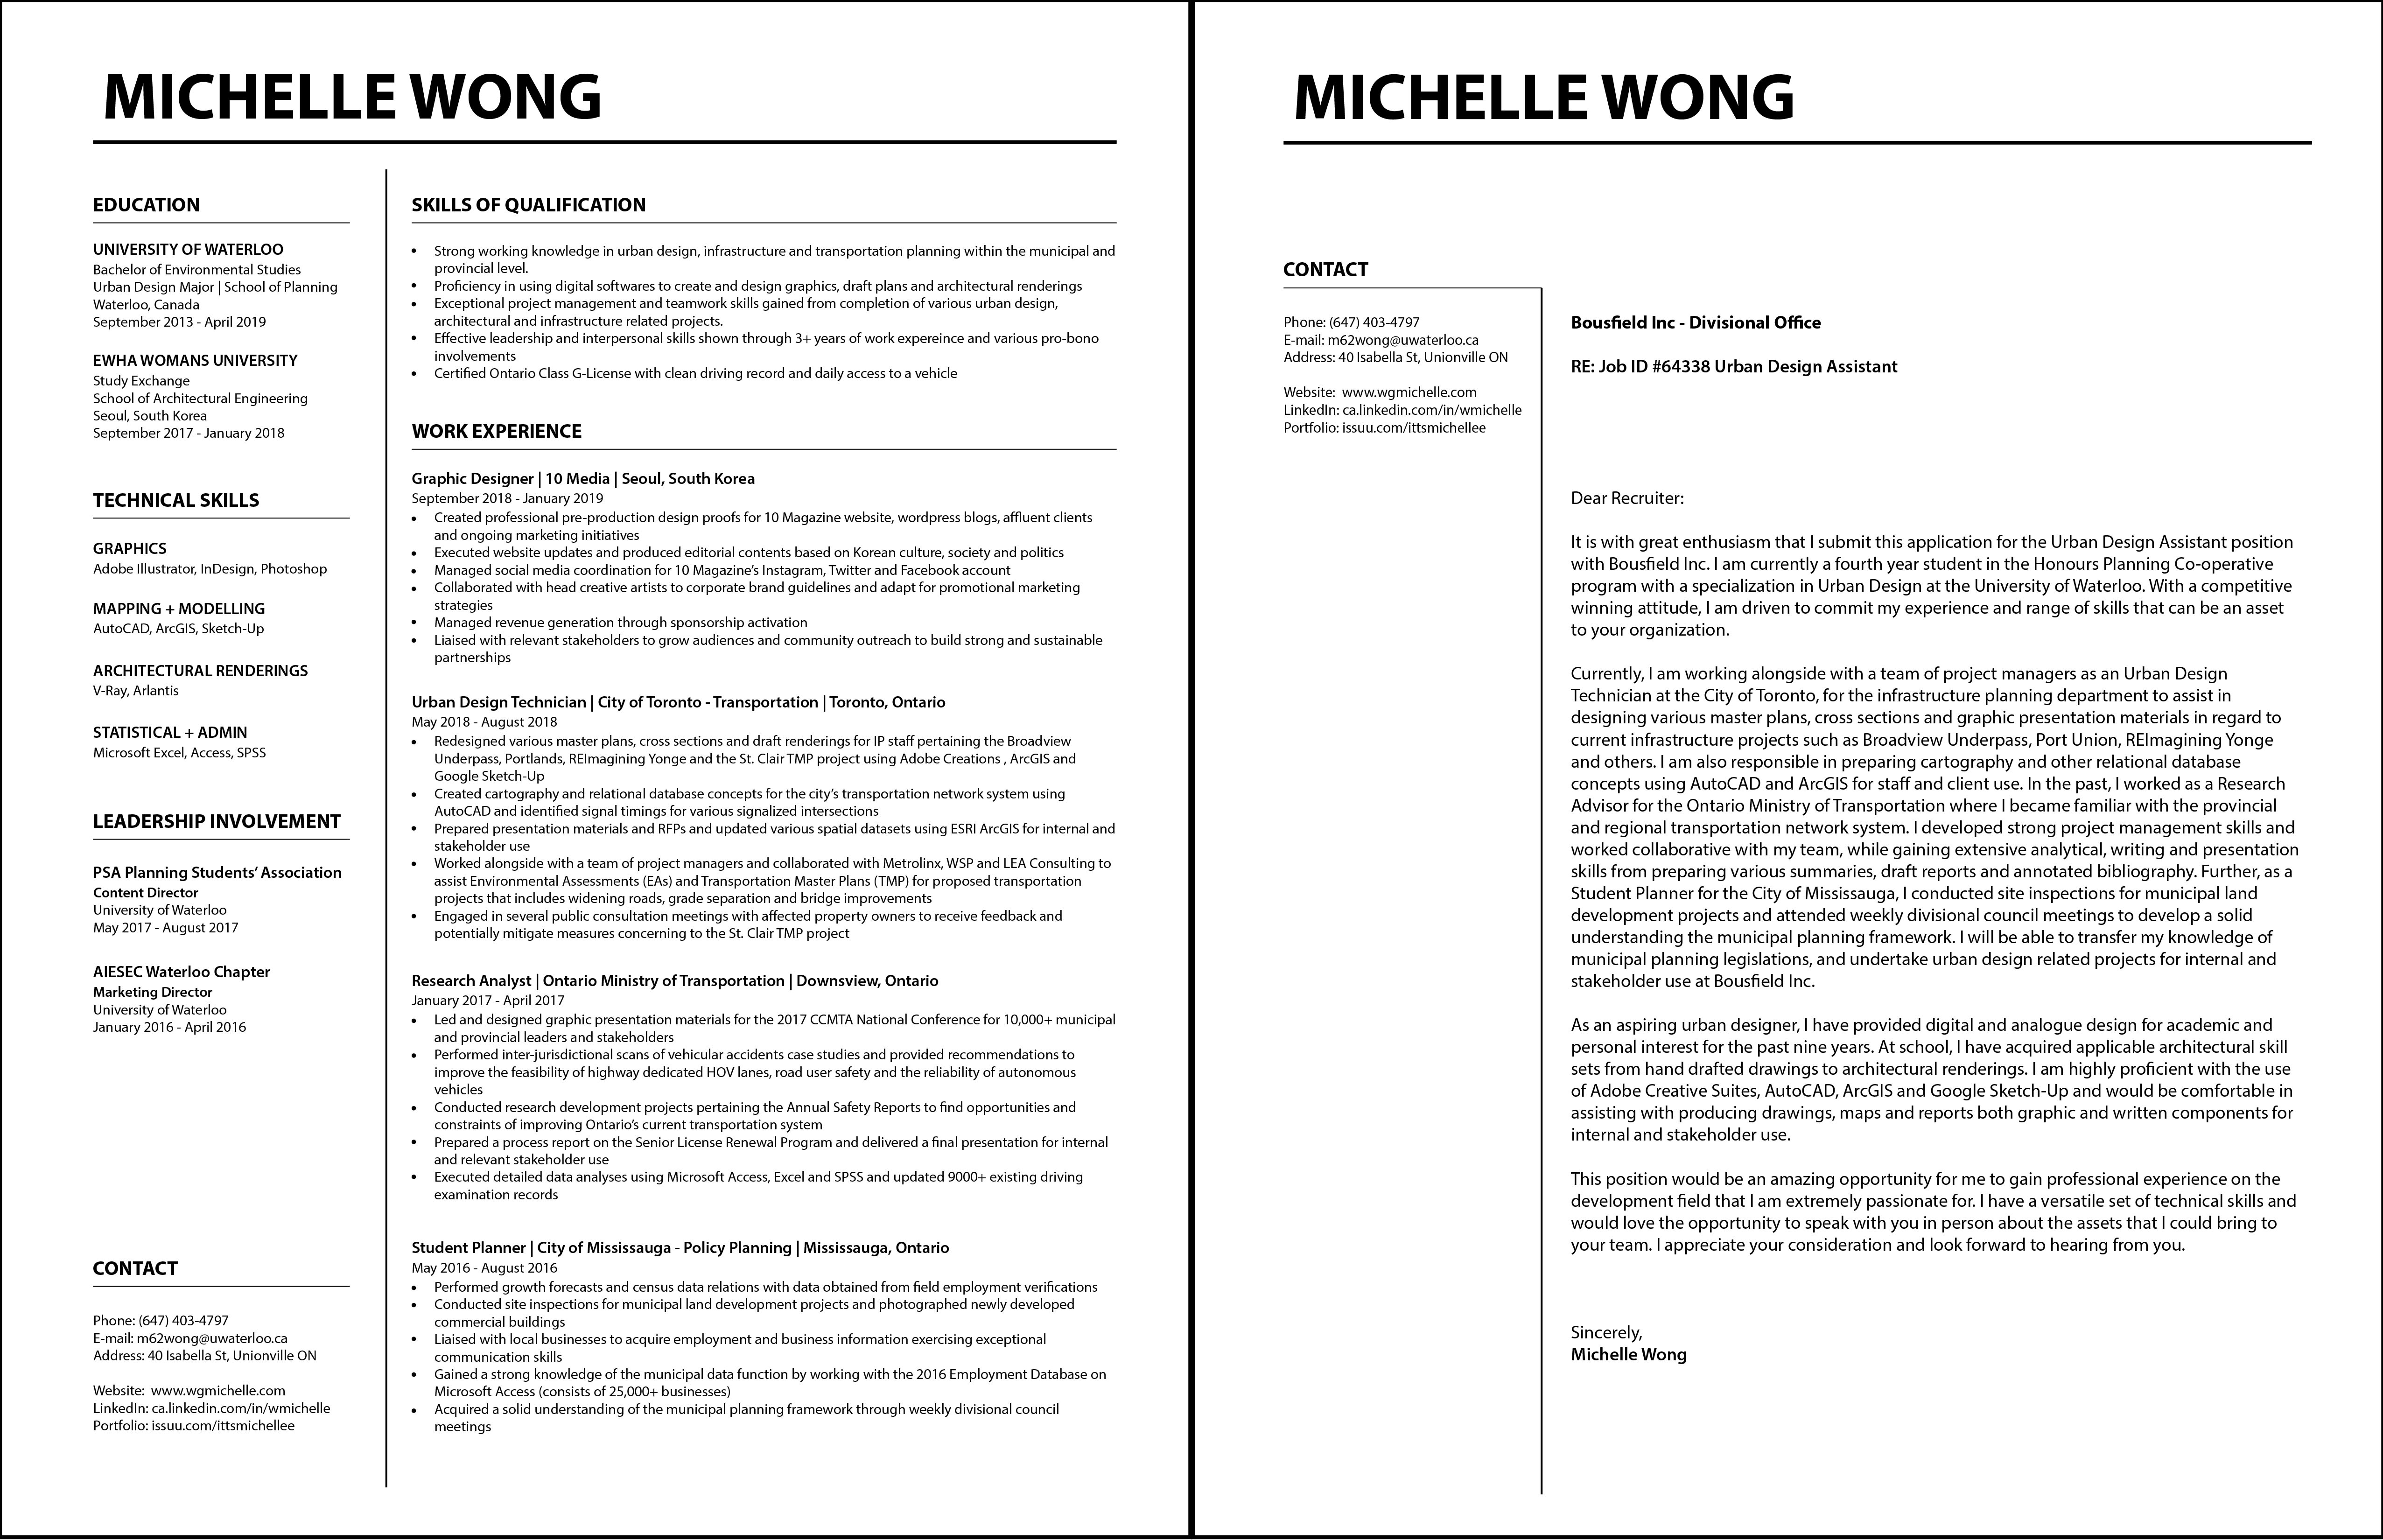 Custom My Design Assistant wgmchelle : i will design you a custom resume and cover letter for $5 on  fiverr